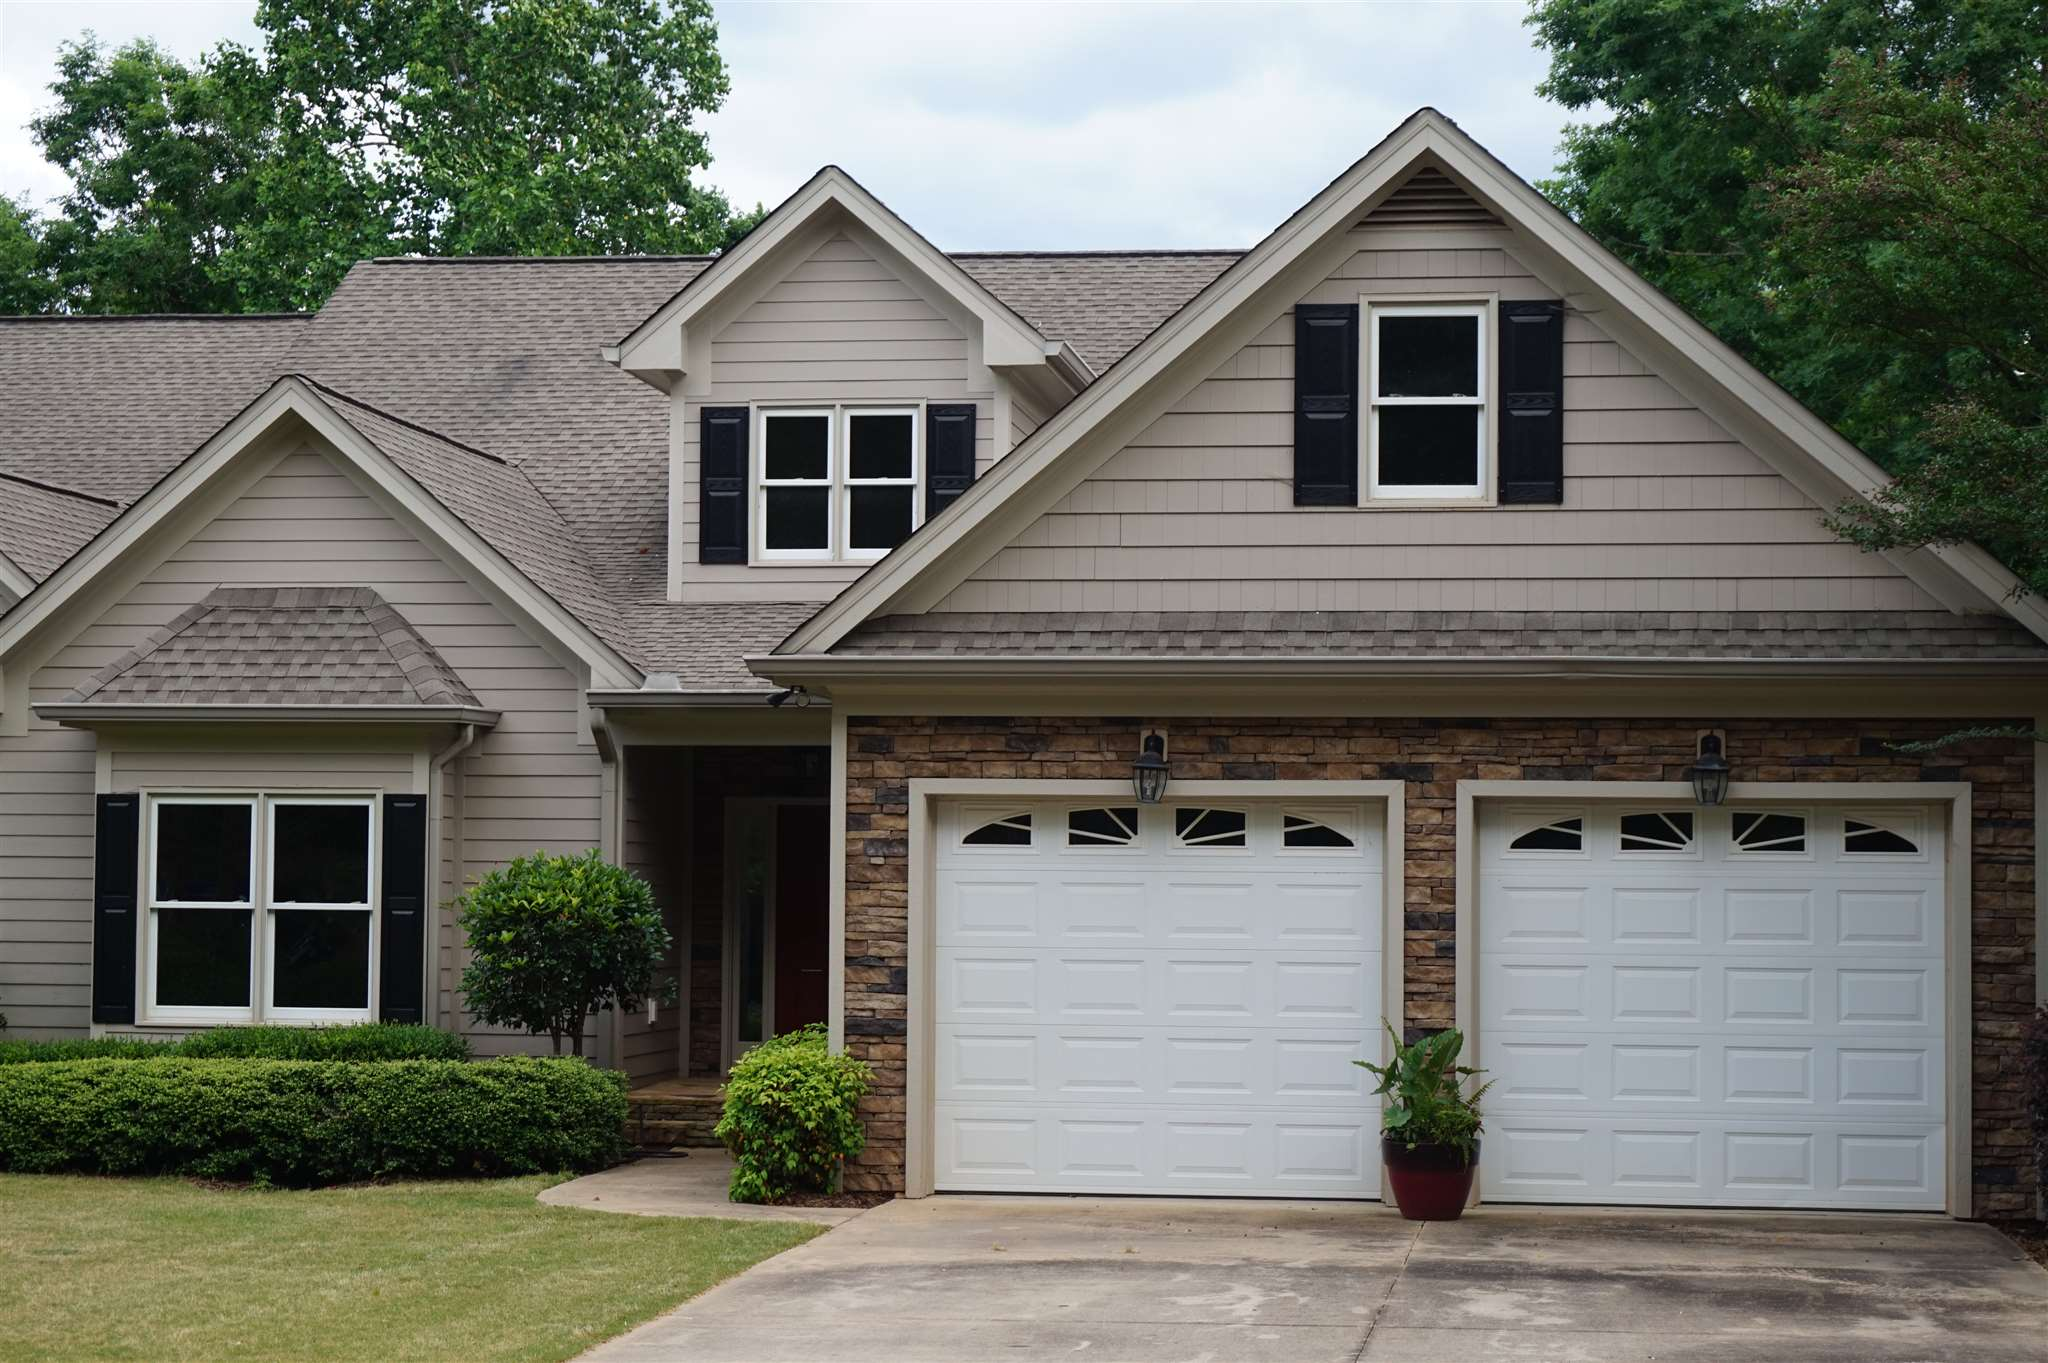 One of Lake Oconee 4 Bedroom Homes for Sale at 1562 VINTAGE CLUB DRIVE